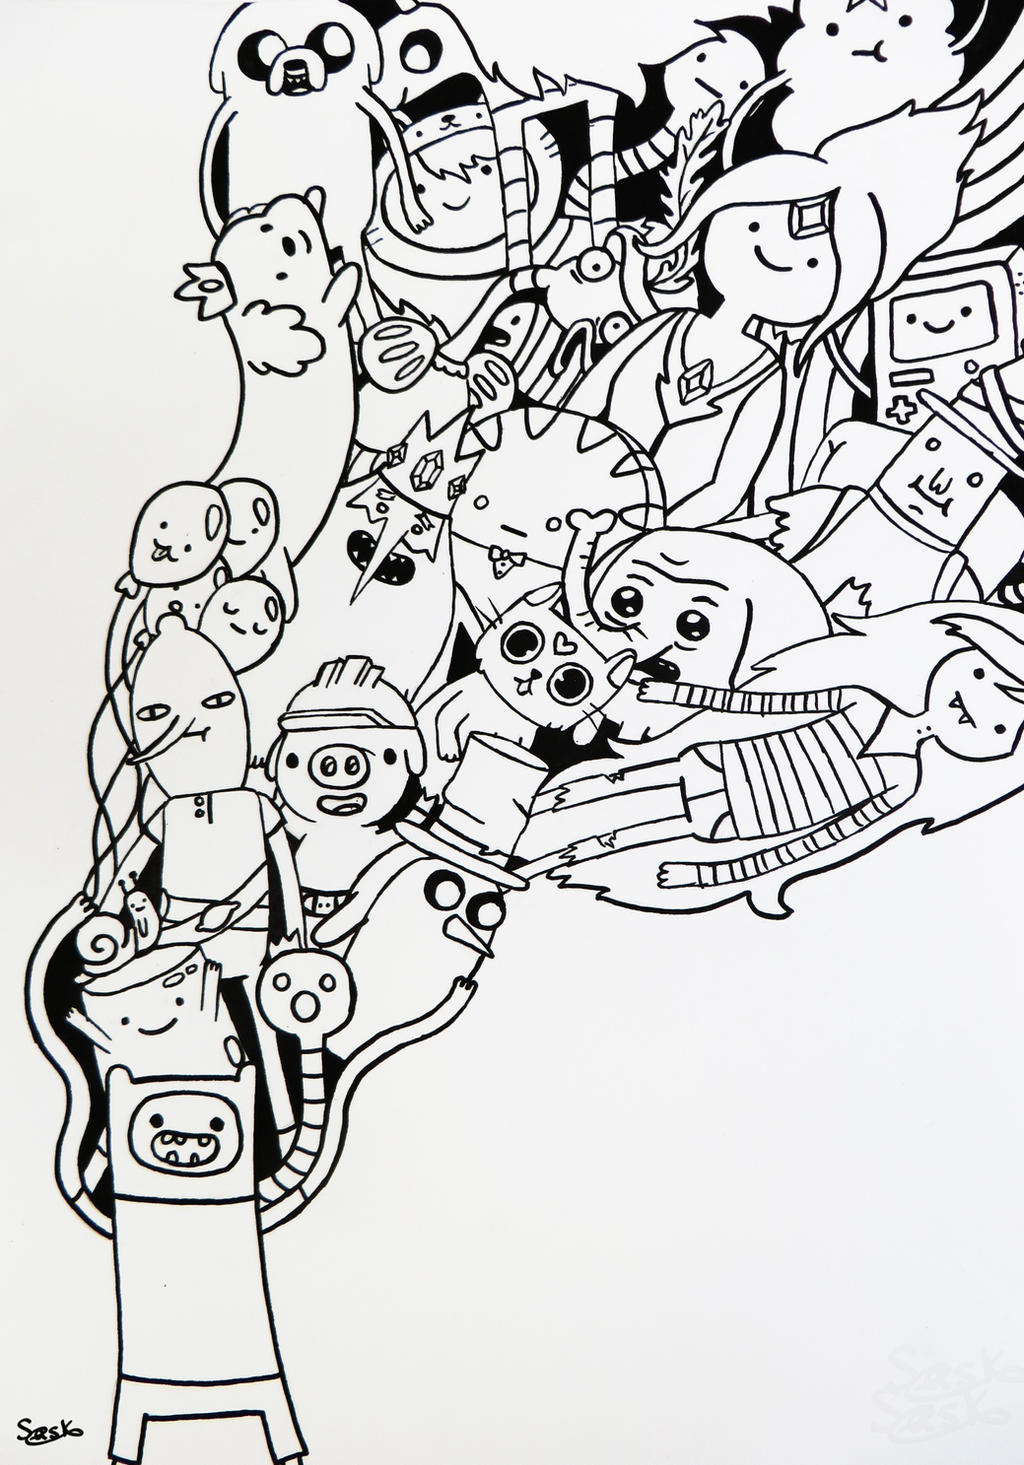 Adventure time doodle by zilverlovely on deviantart for Doodle characters